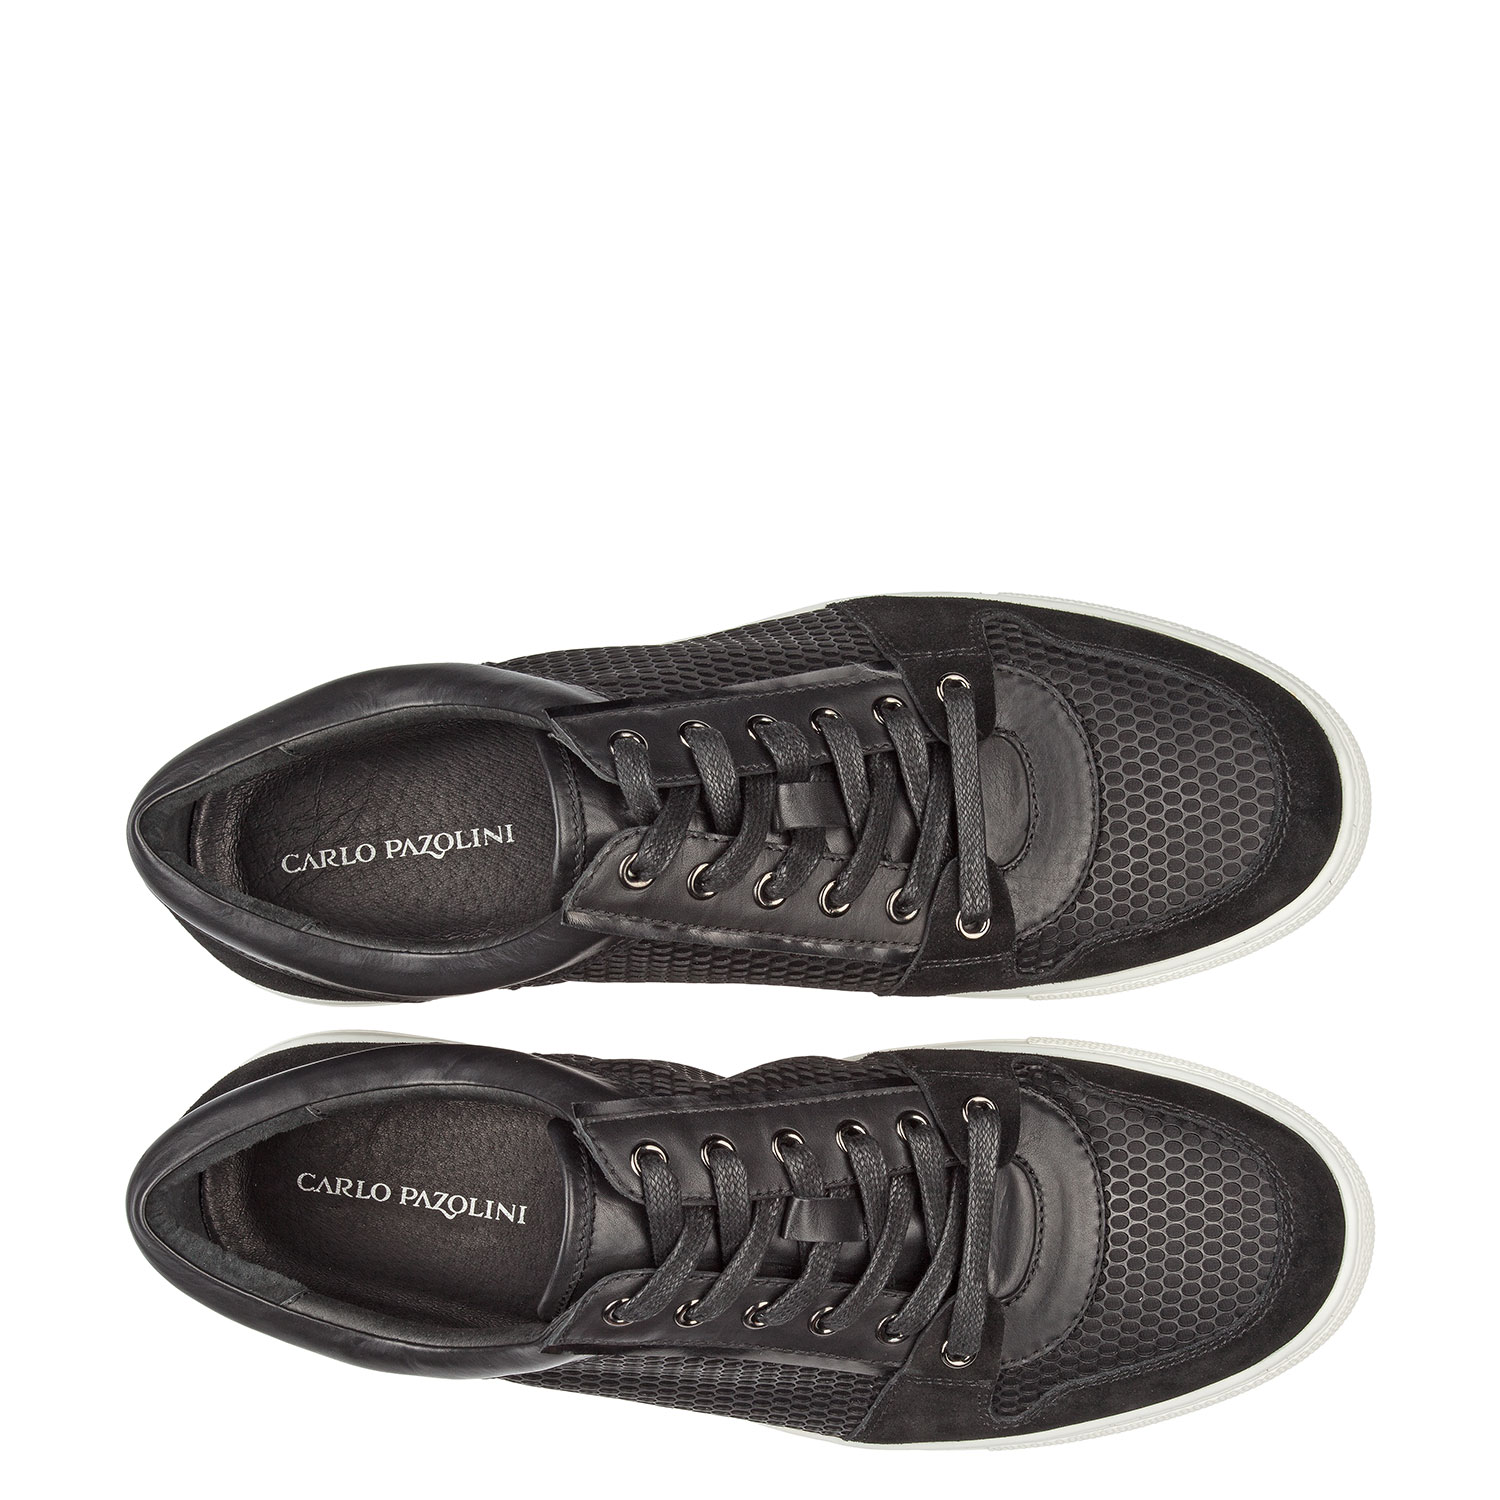 Men's shoes CARLO PAZOLINI JH-GRK3-1